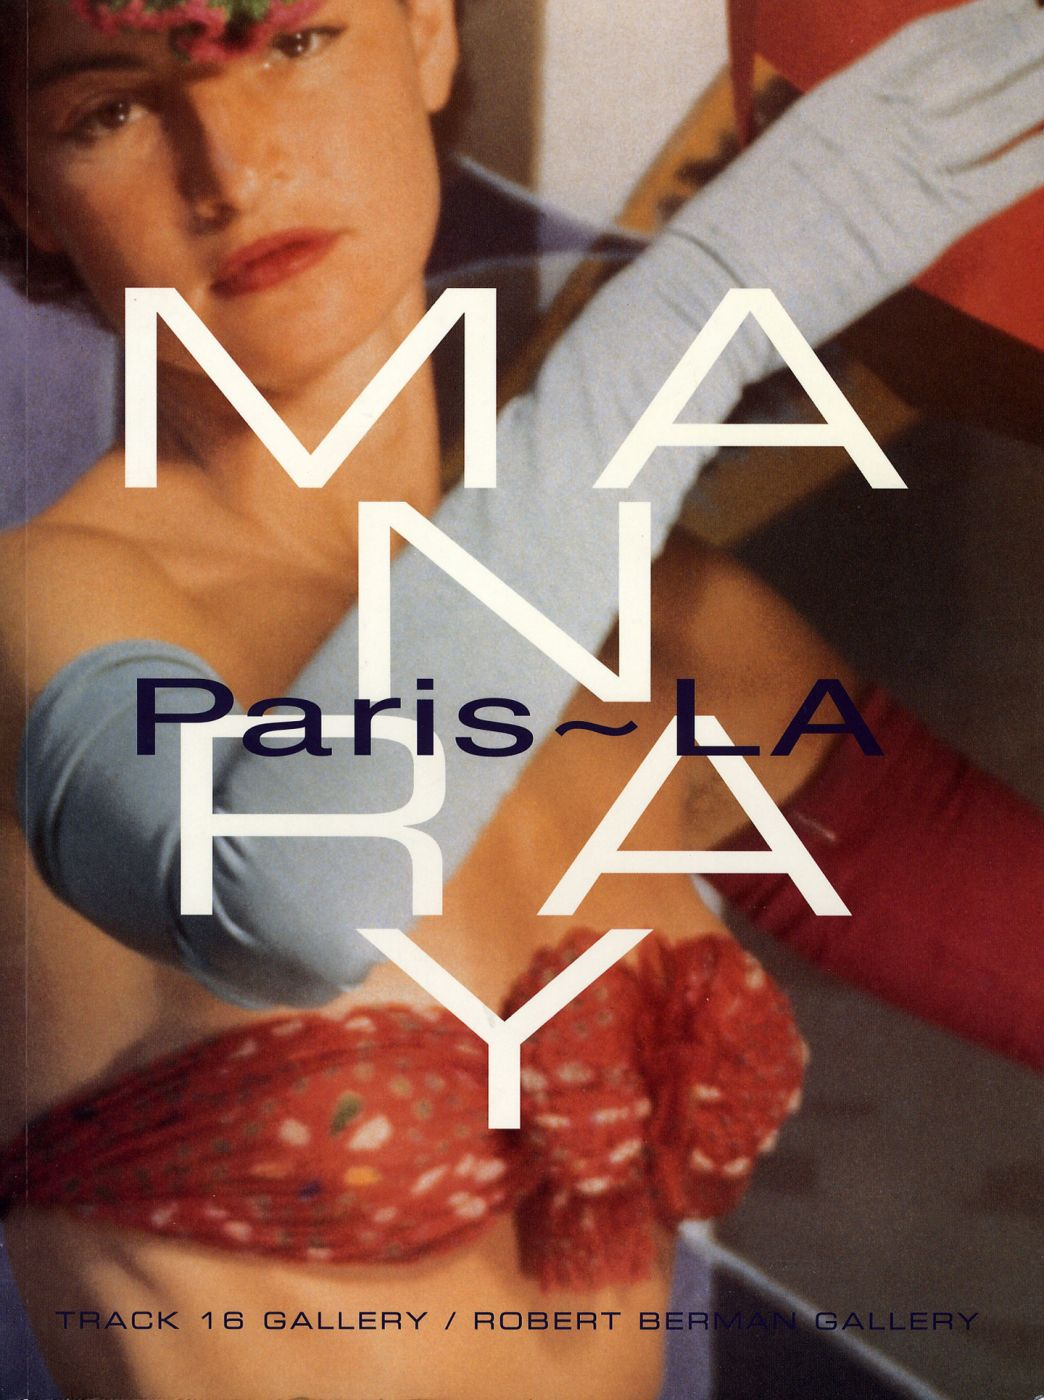 Man Ray: Paris-L.A. (Smart Art Press Volume 2, Number 17)